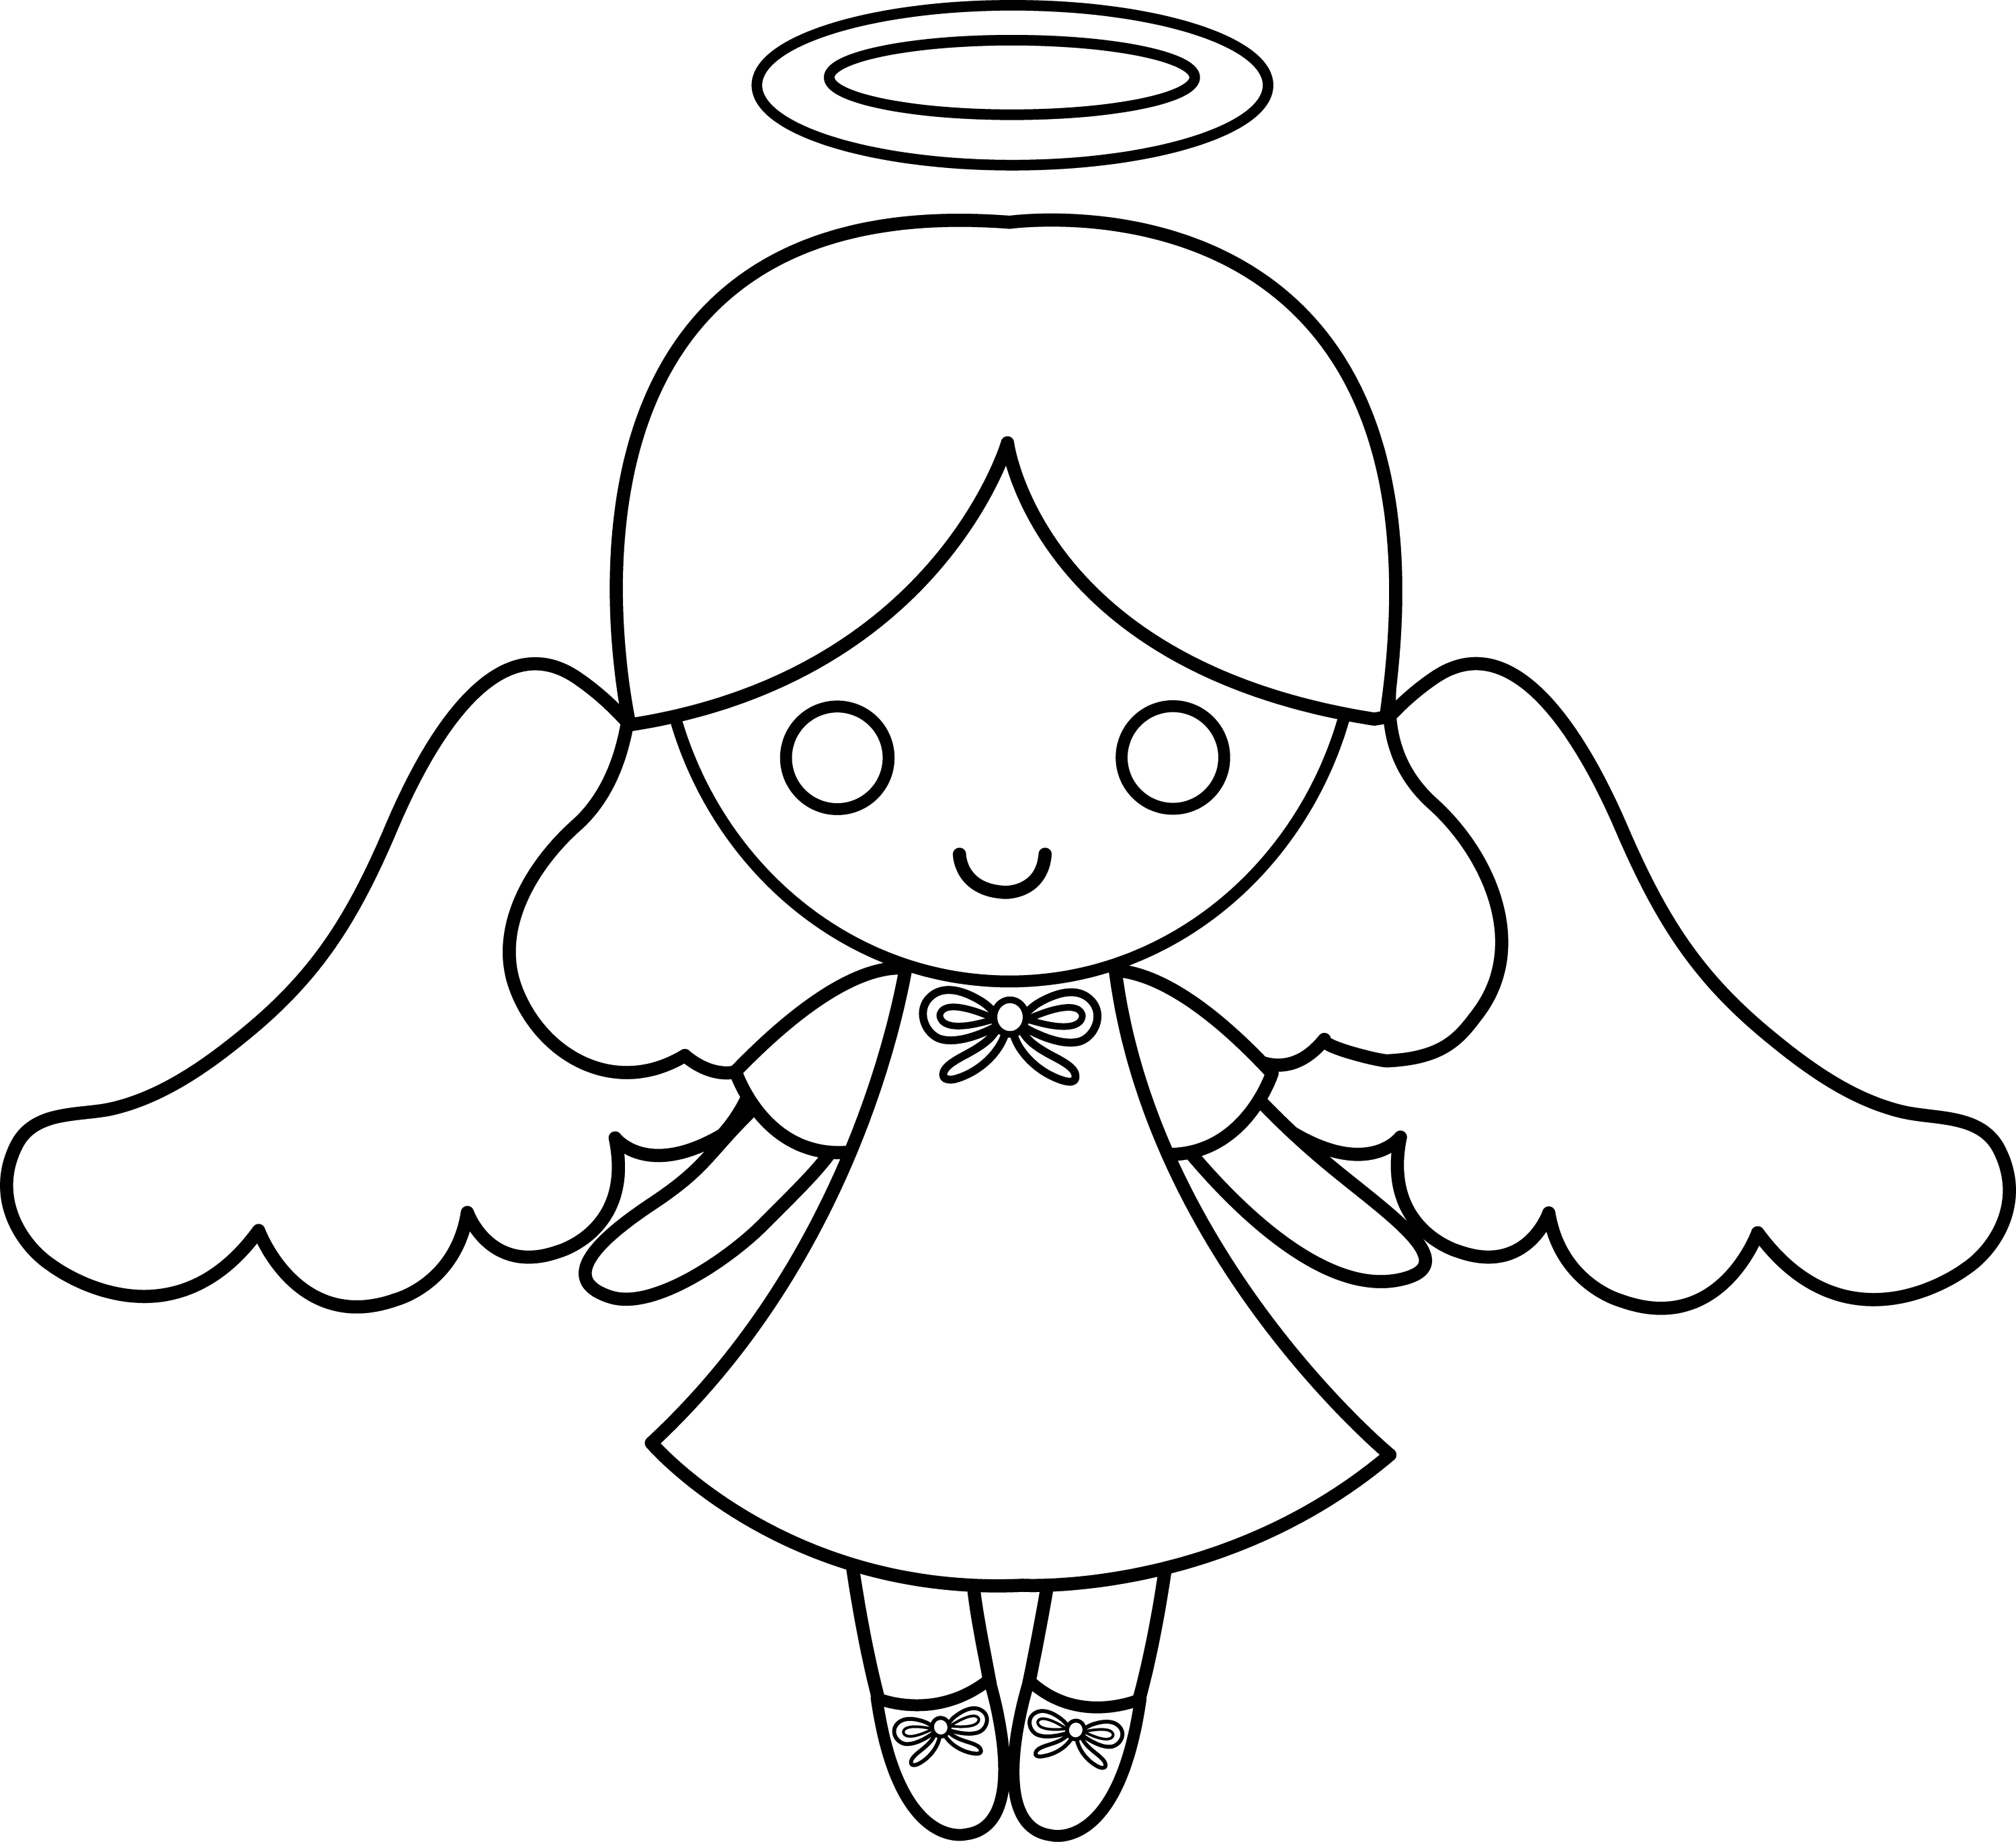 colouring pictures of angels two angels coloring page free printable coloring pages pictures angels of colouring